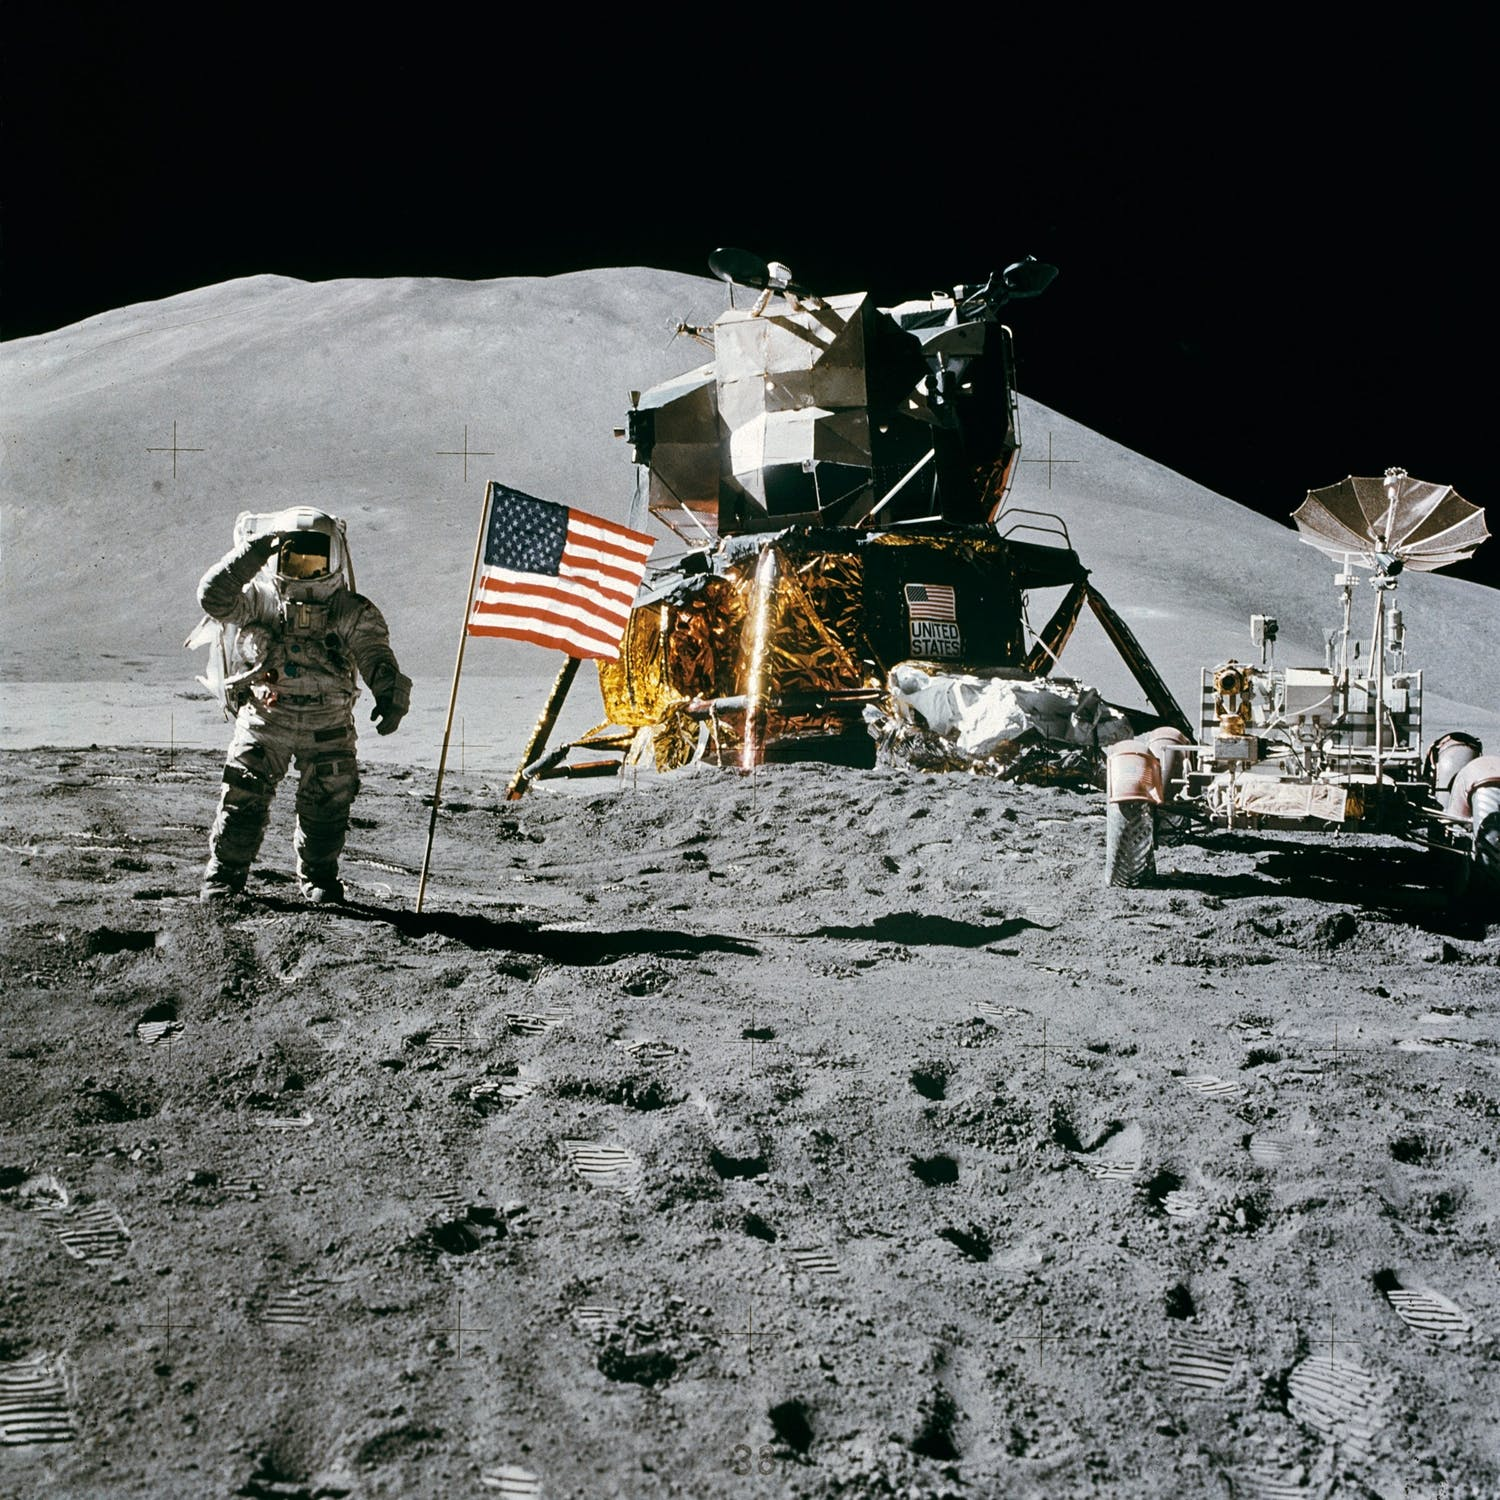 space-station-moon-landing-apollo-15-james-irwin-39896